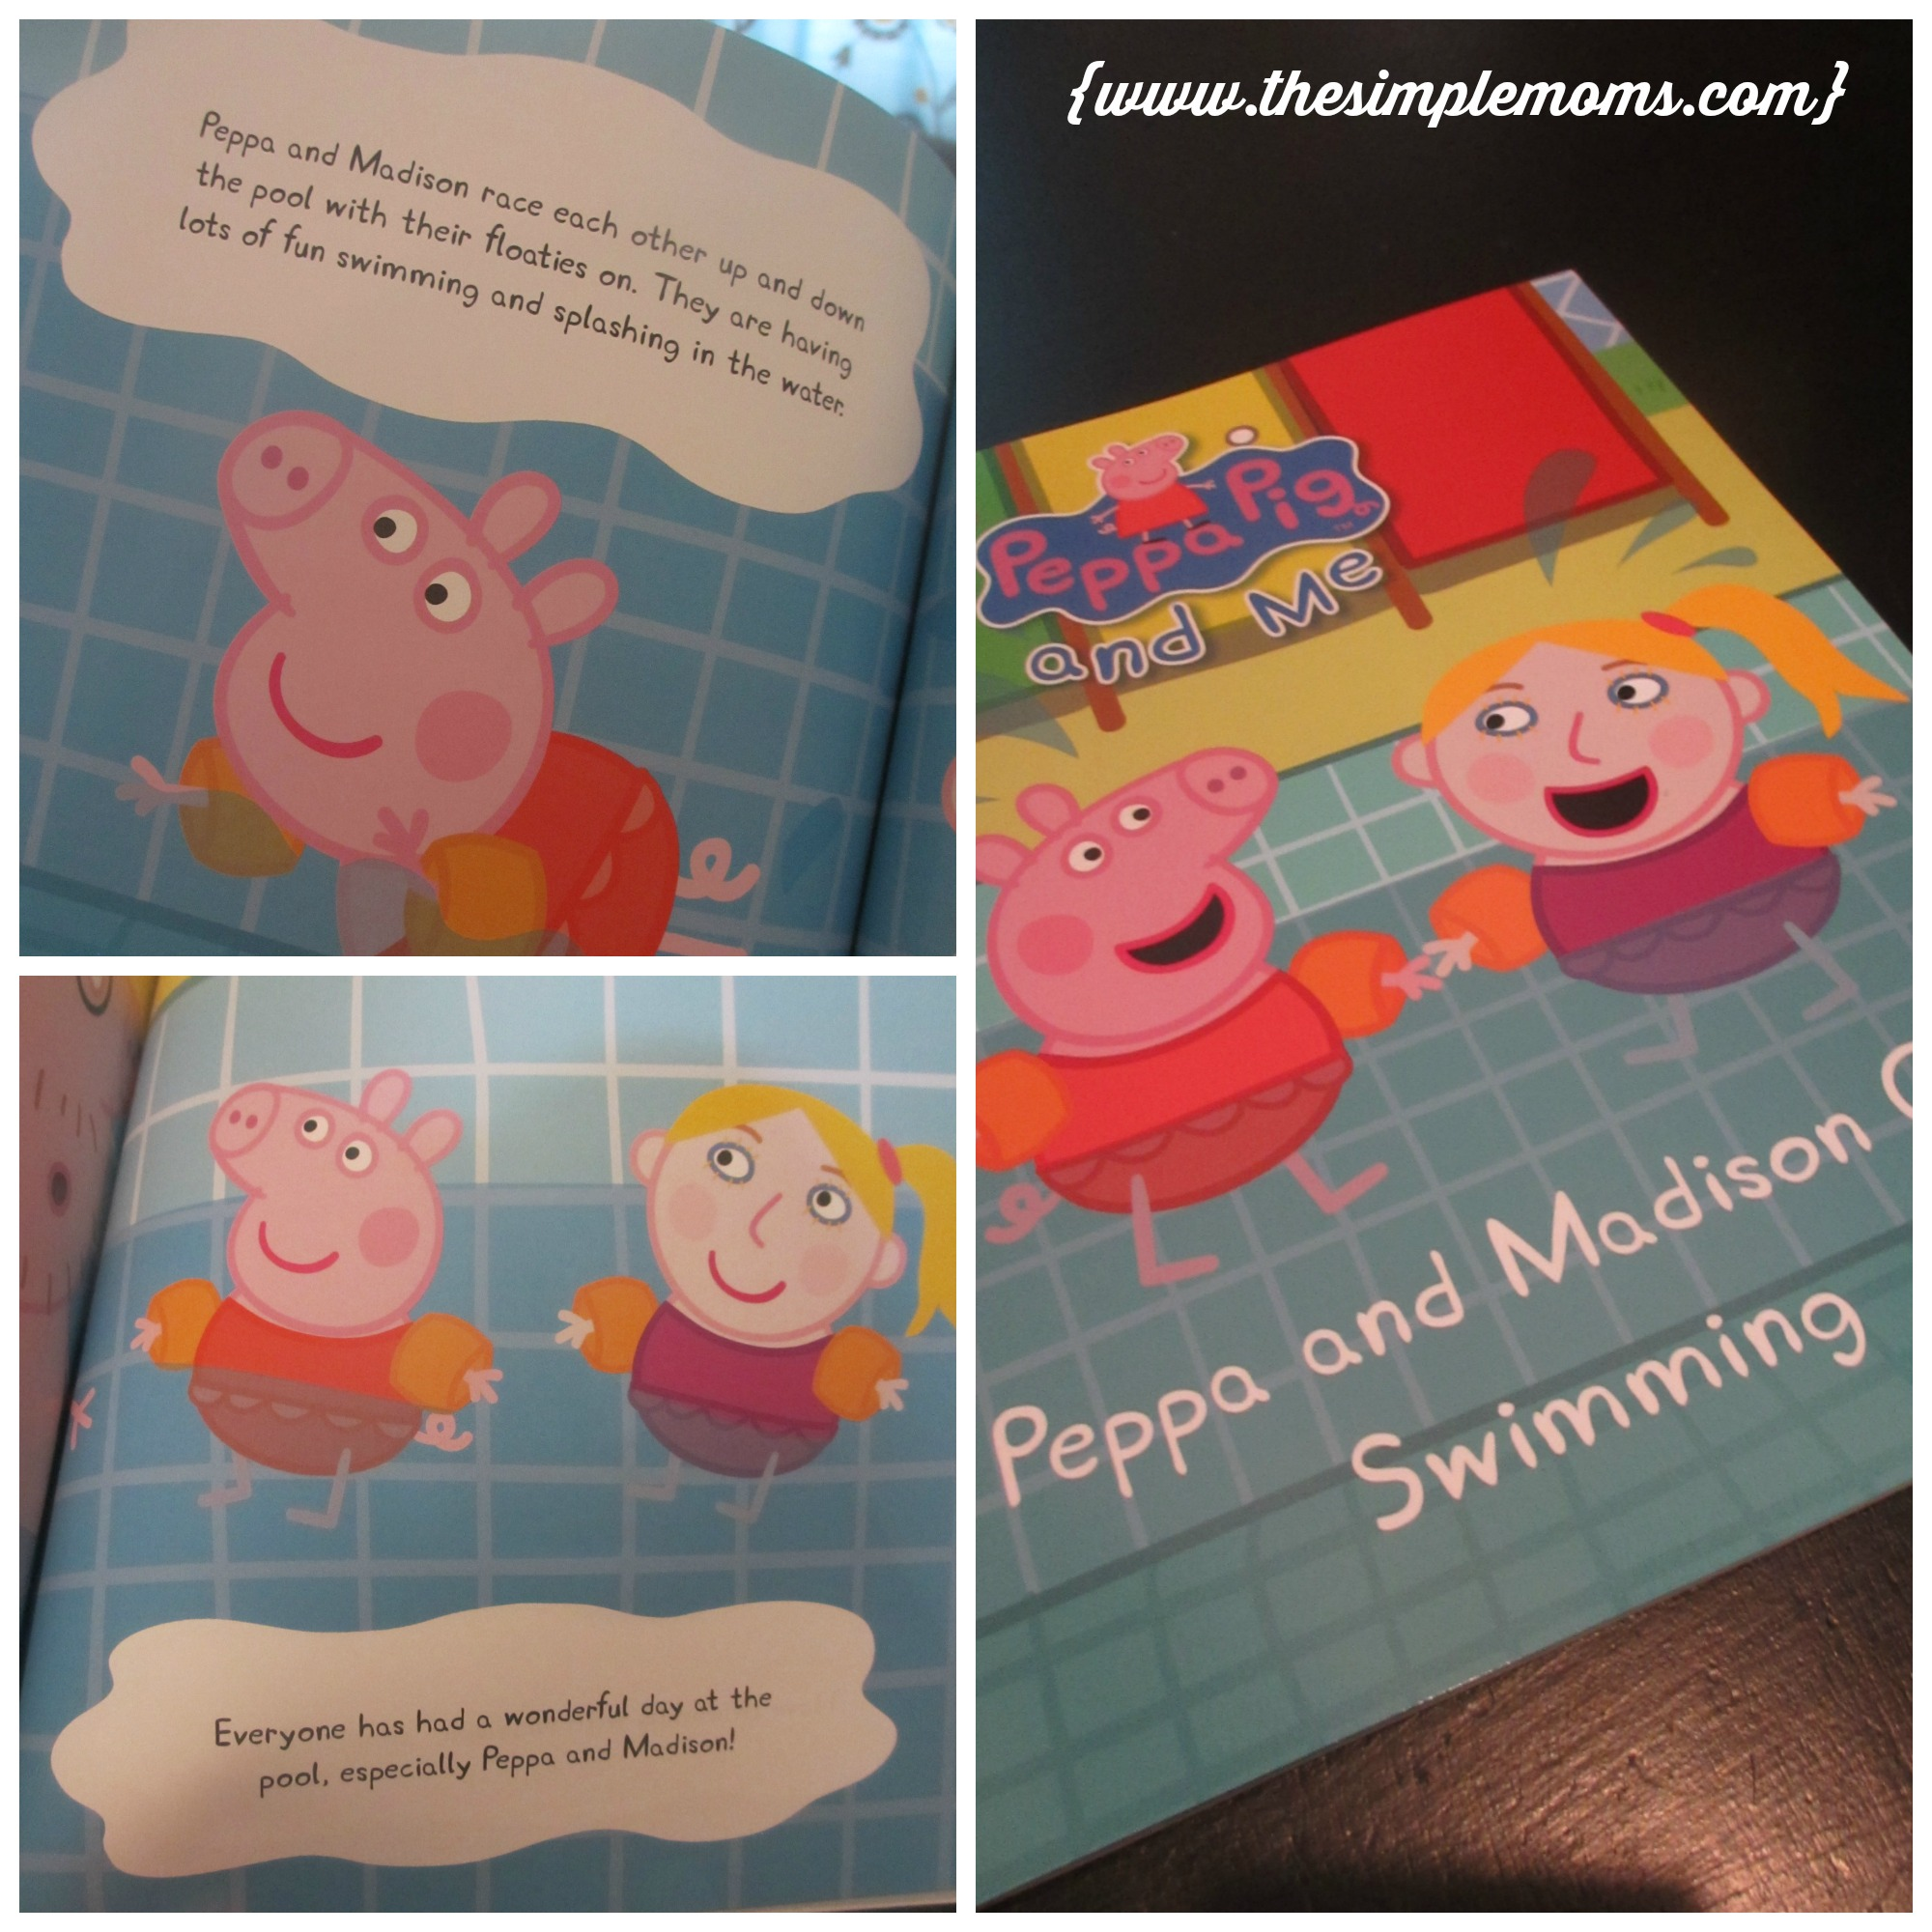 Peppa Pig Search Results The Simple Moms